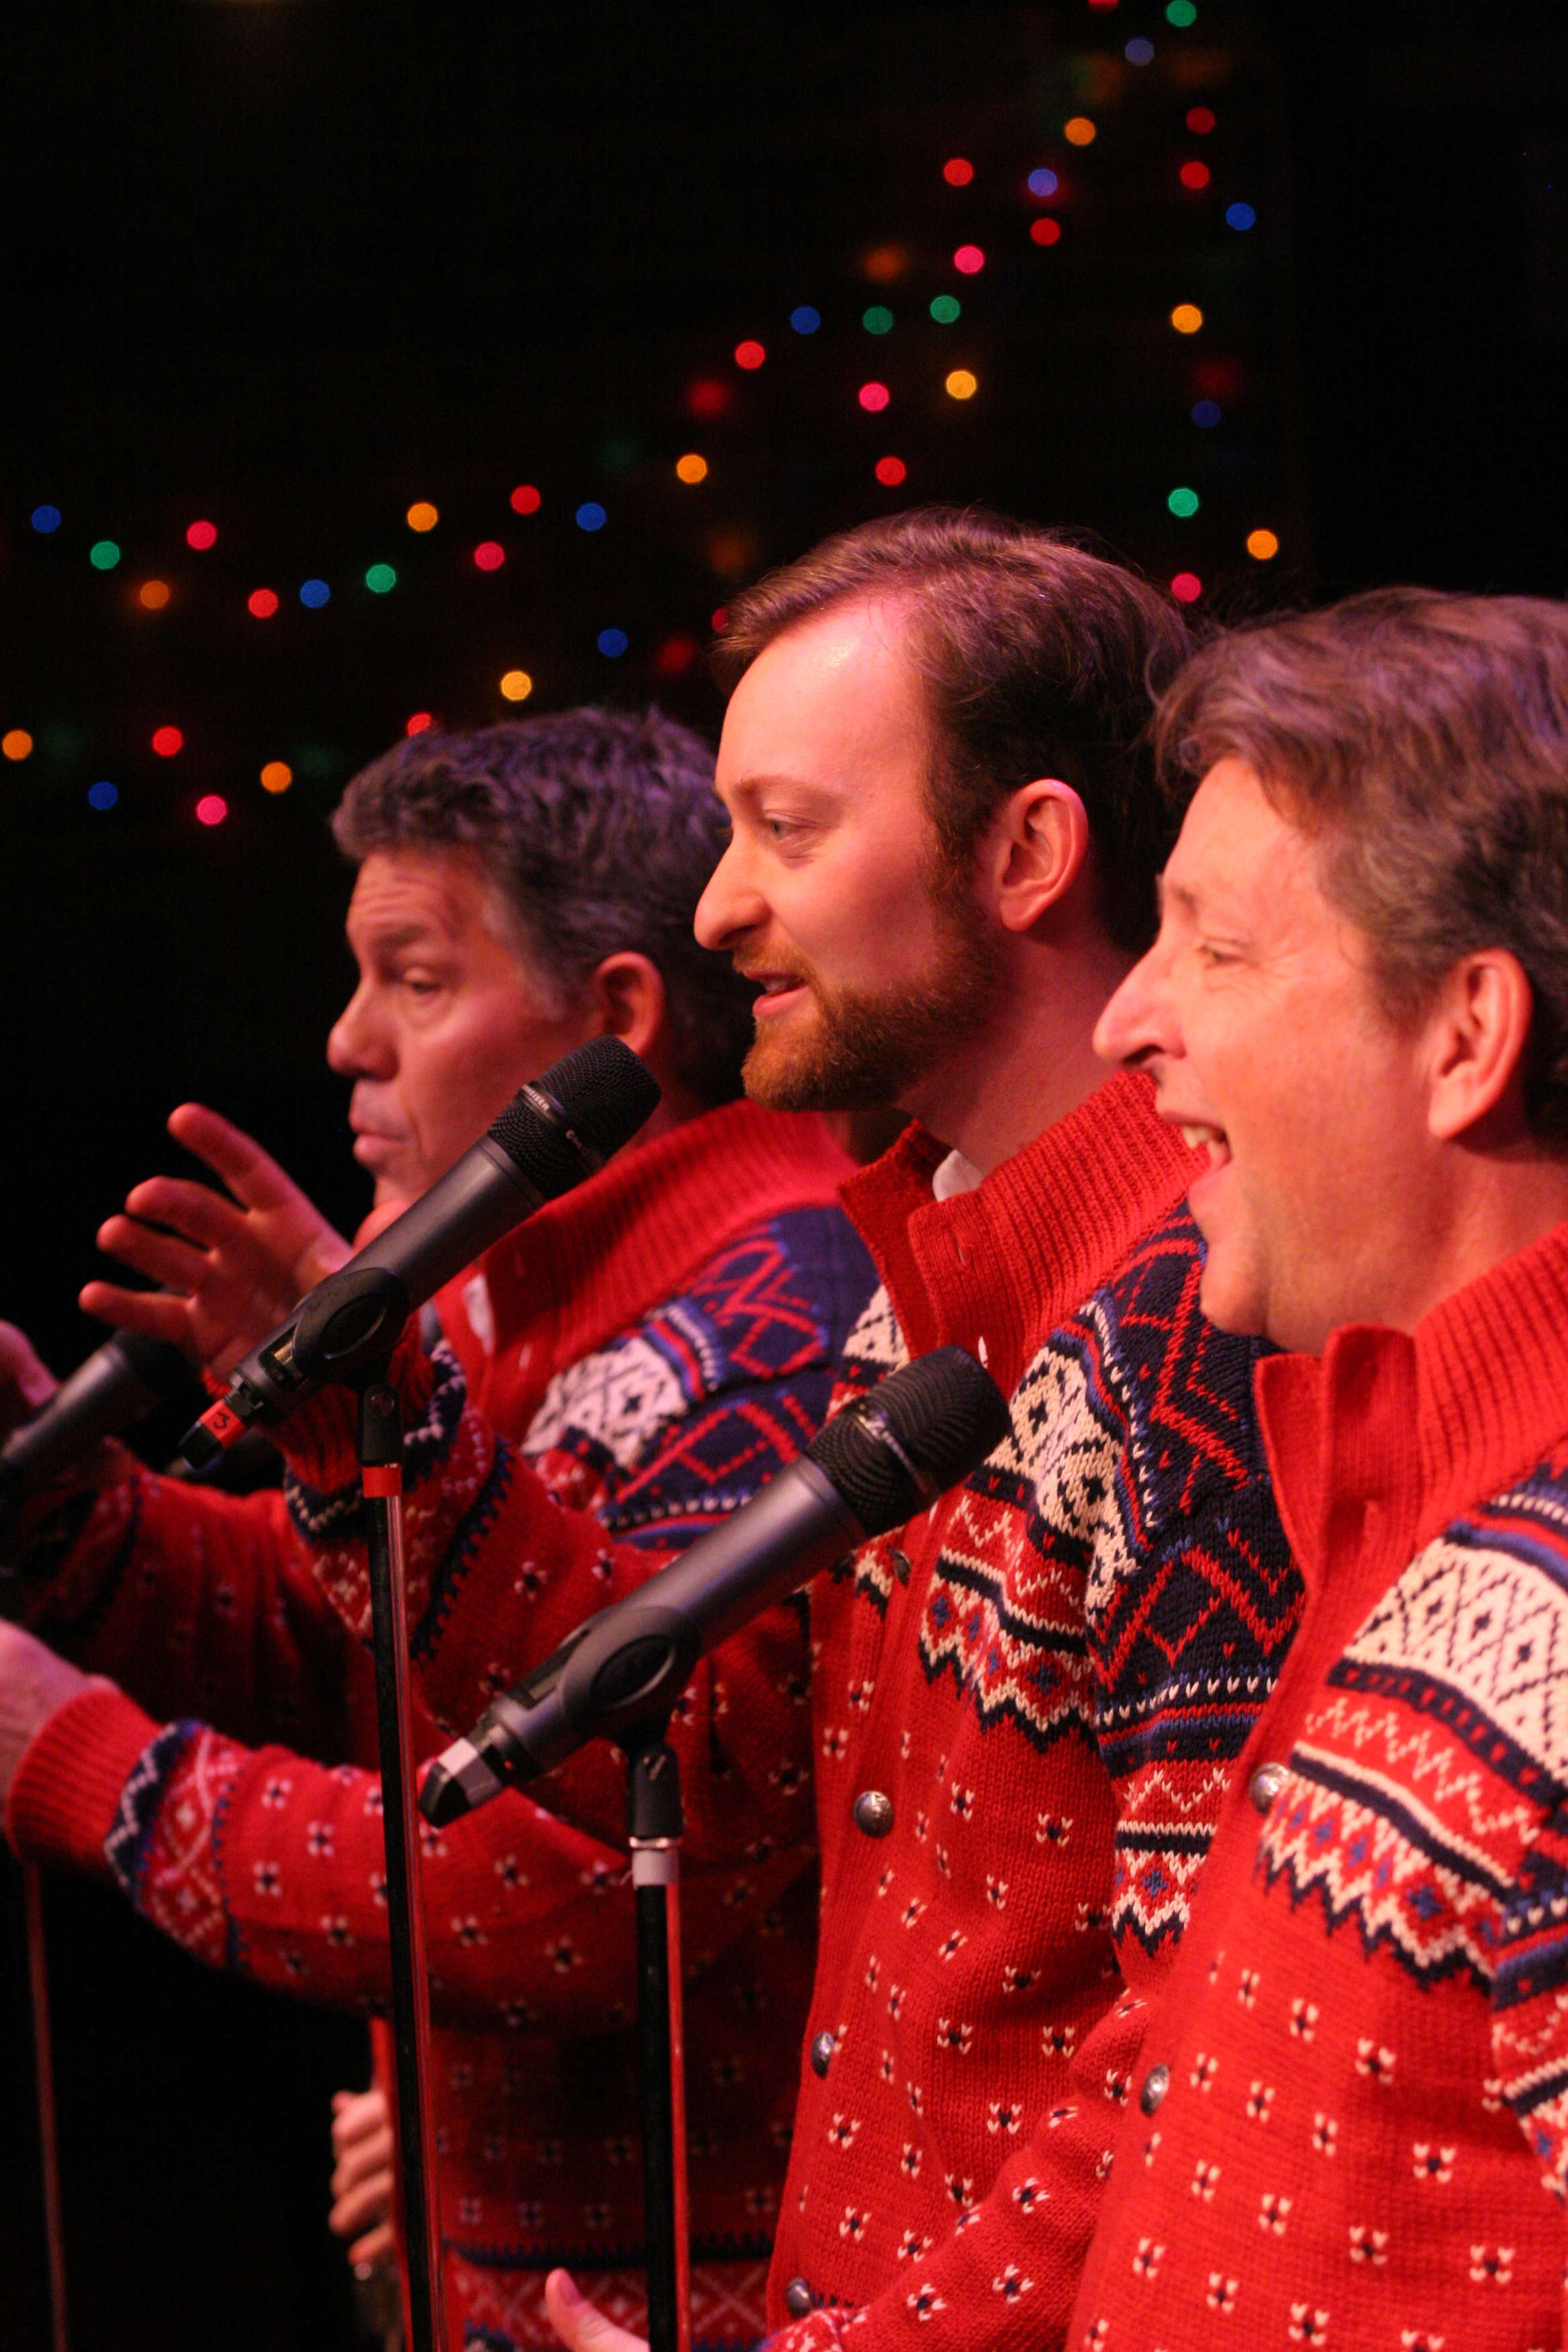 A Lug Nuts Christmas: Rousing Entertainment For All Ages!